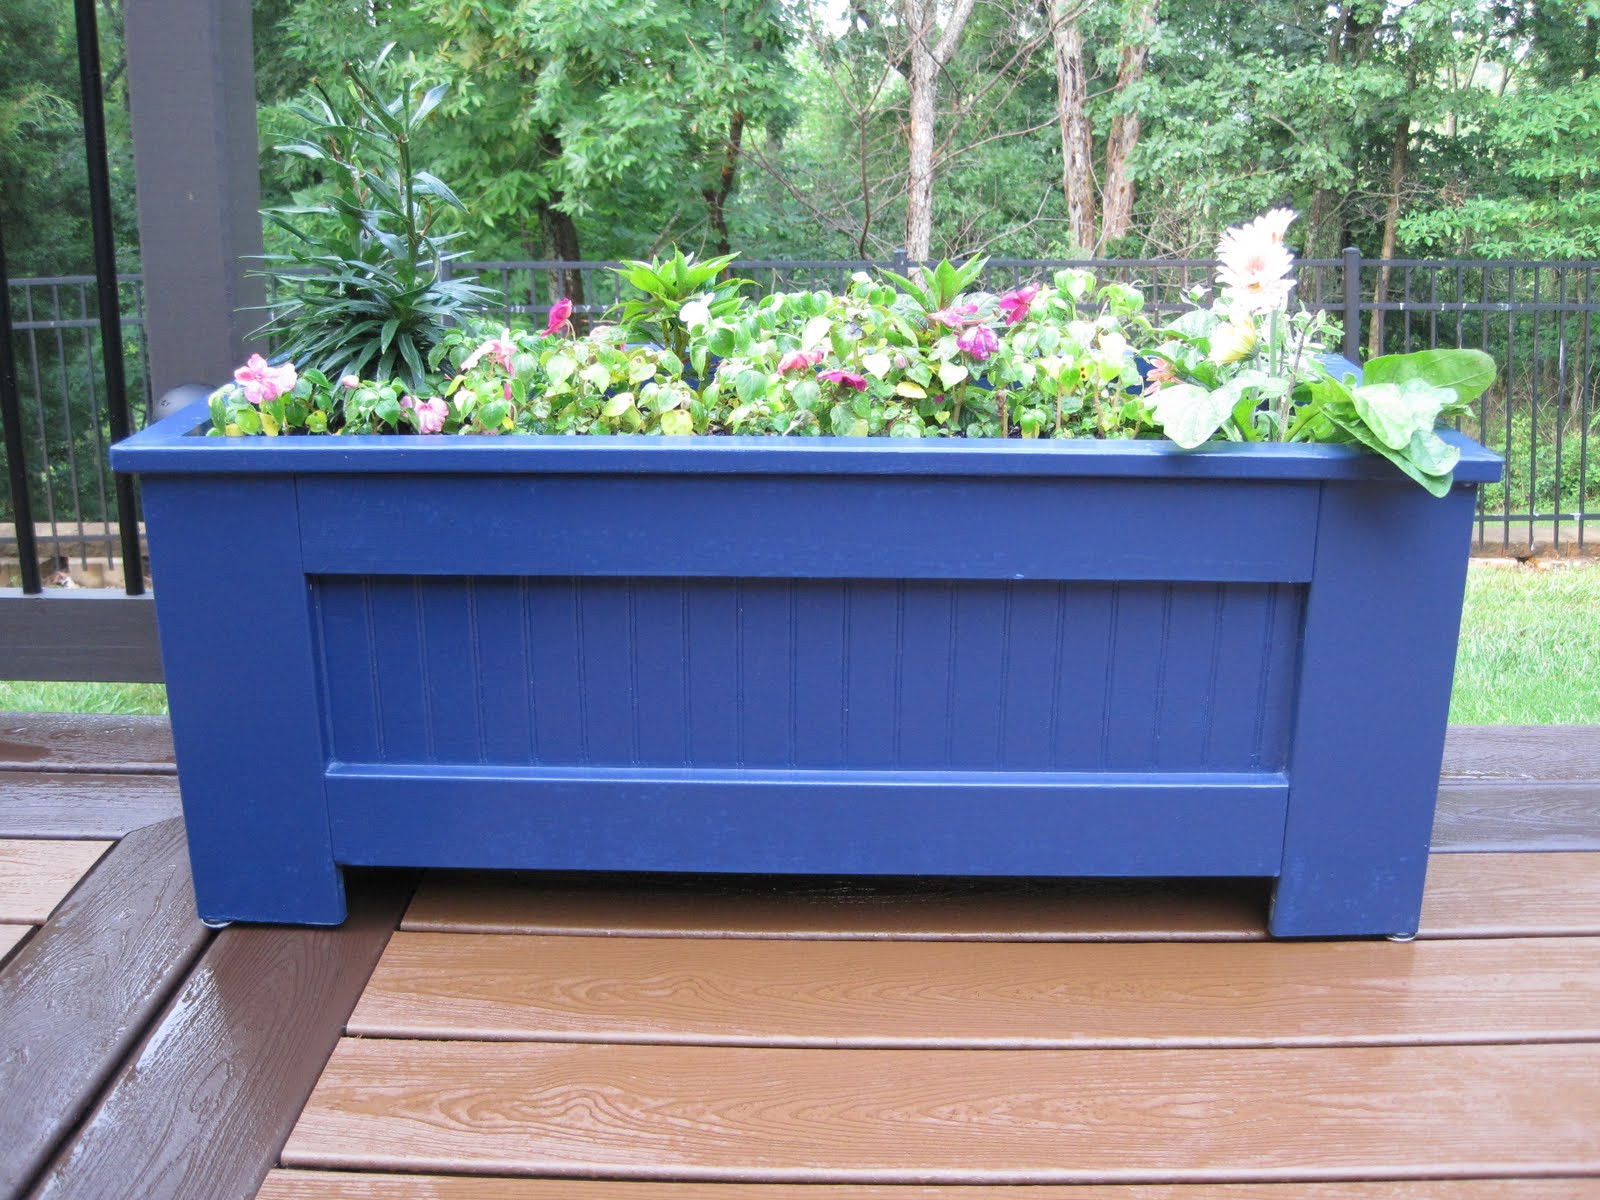 Best ideas about DIY Planter Box . Save or Pin SAVED BY GRACE DIY Planter Boxes Now.